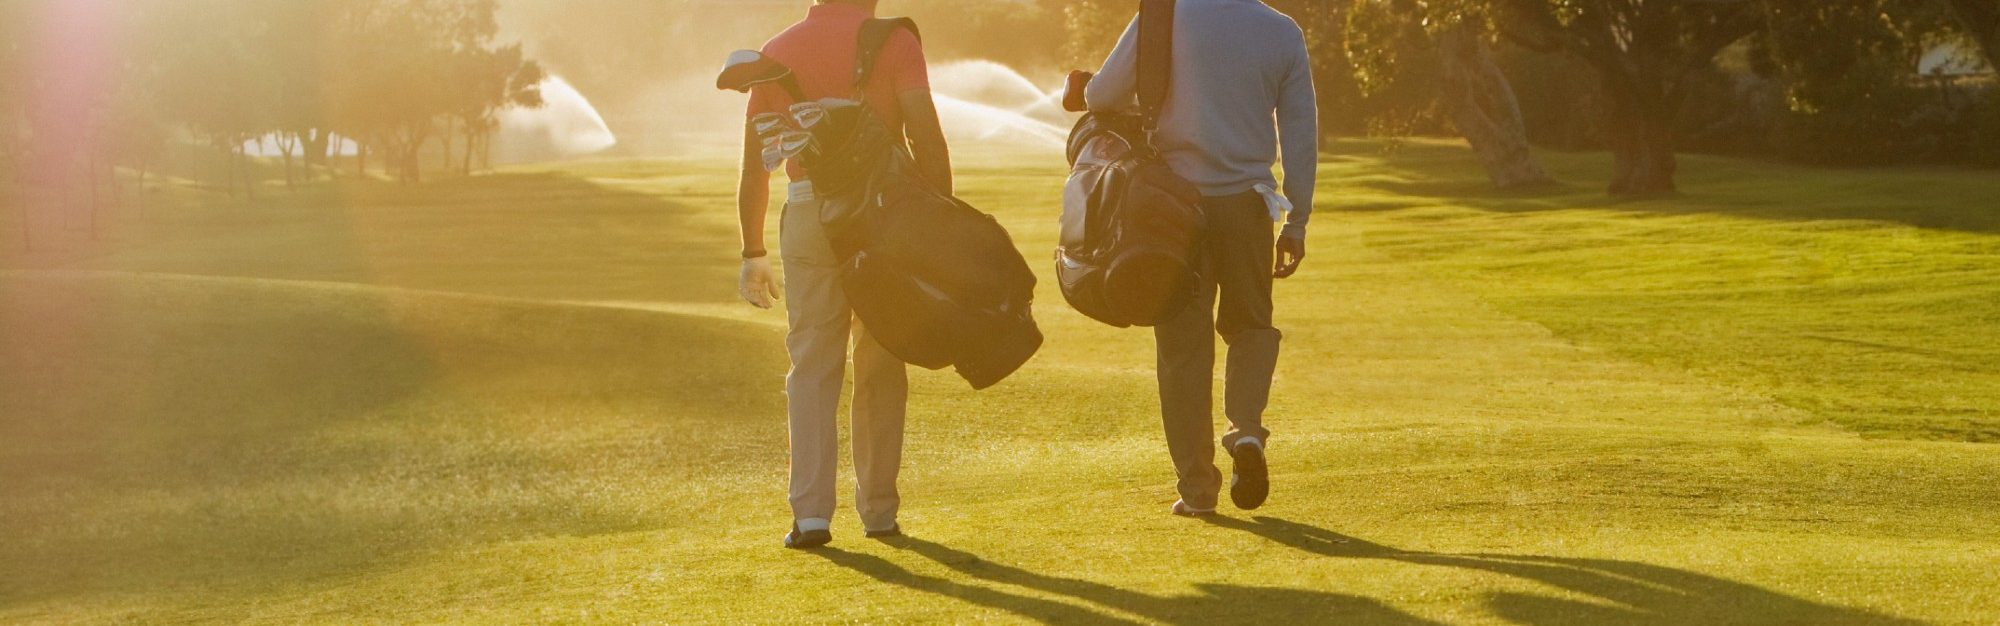 England Golf: Stop worrying about independent golfers – they won't affect club membership